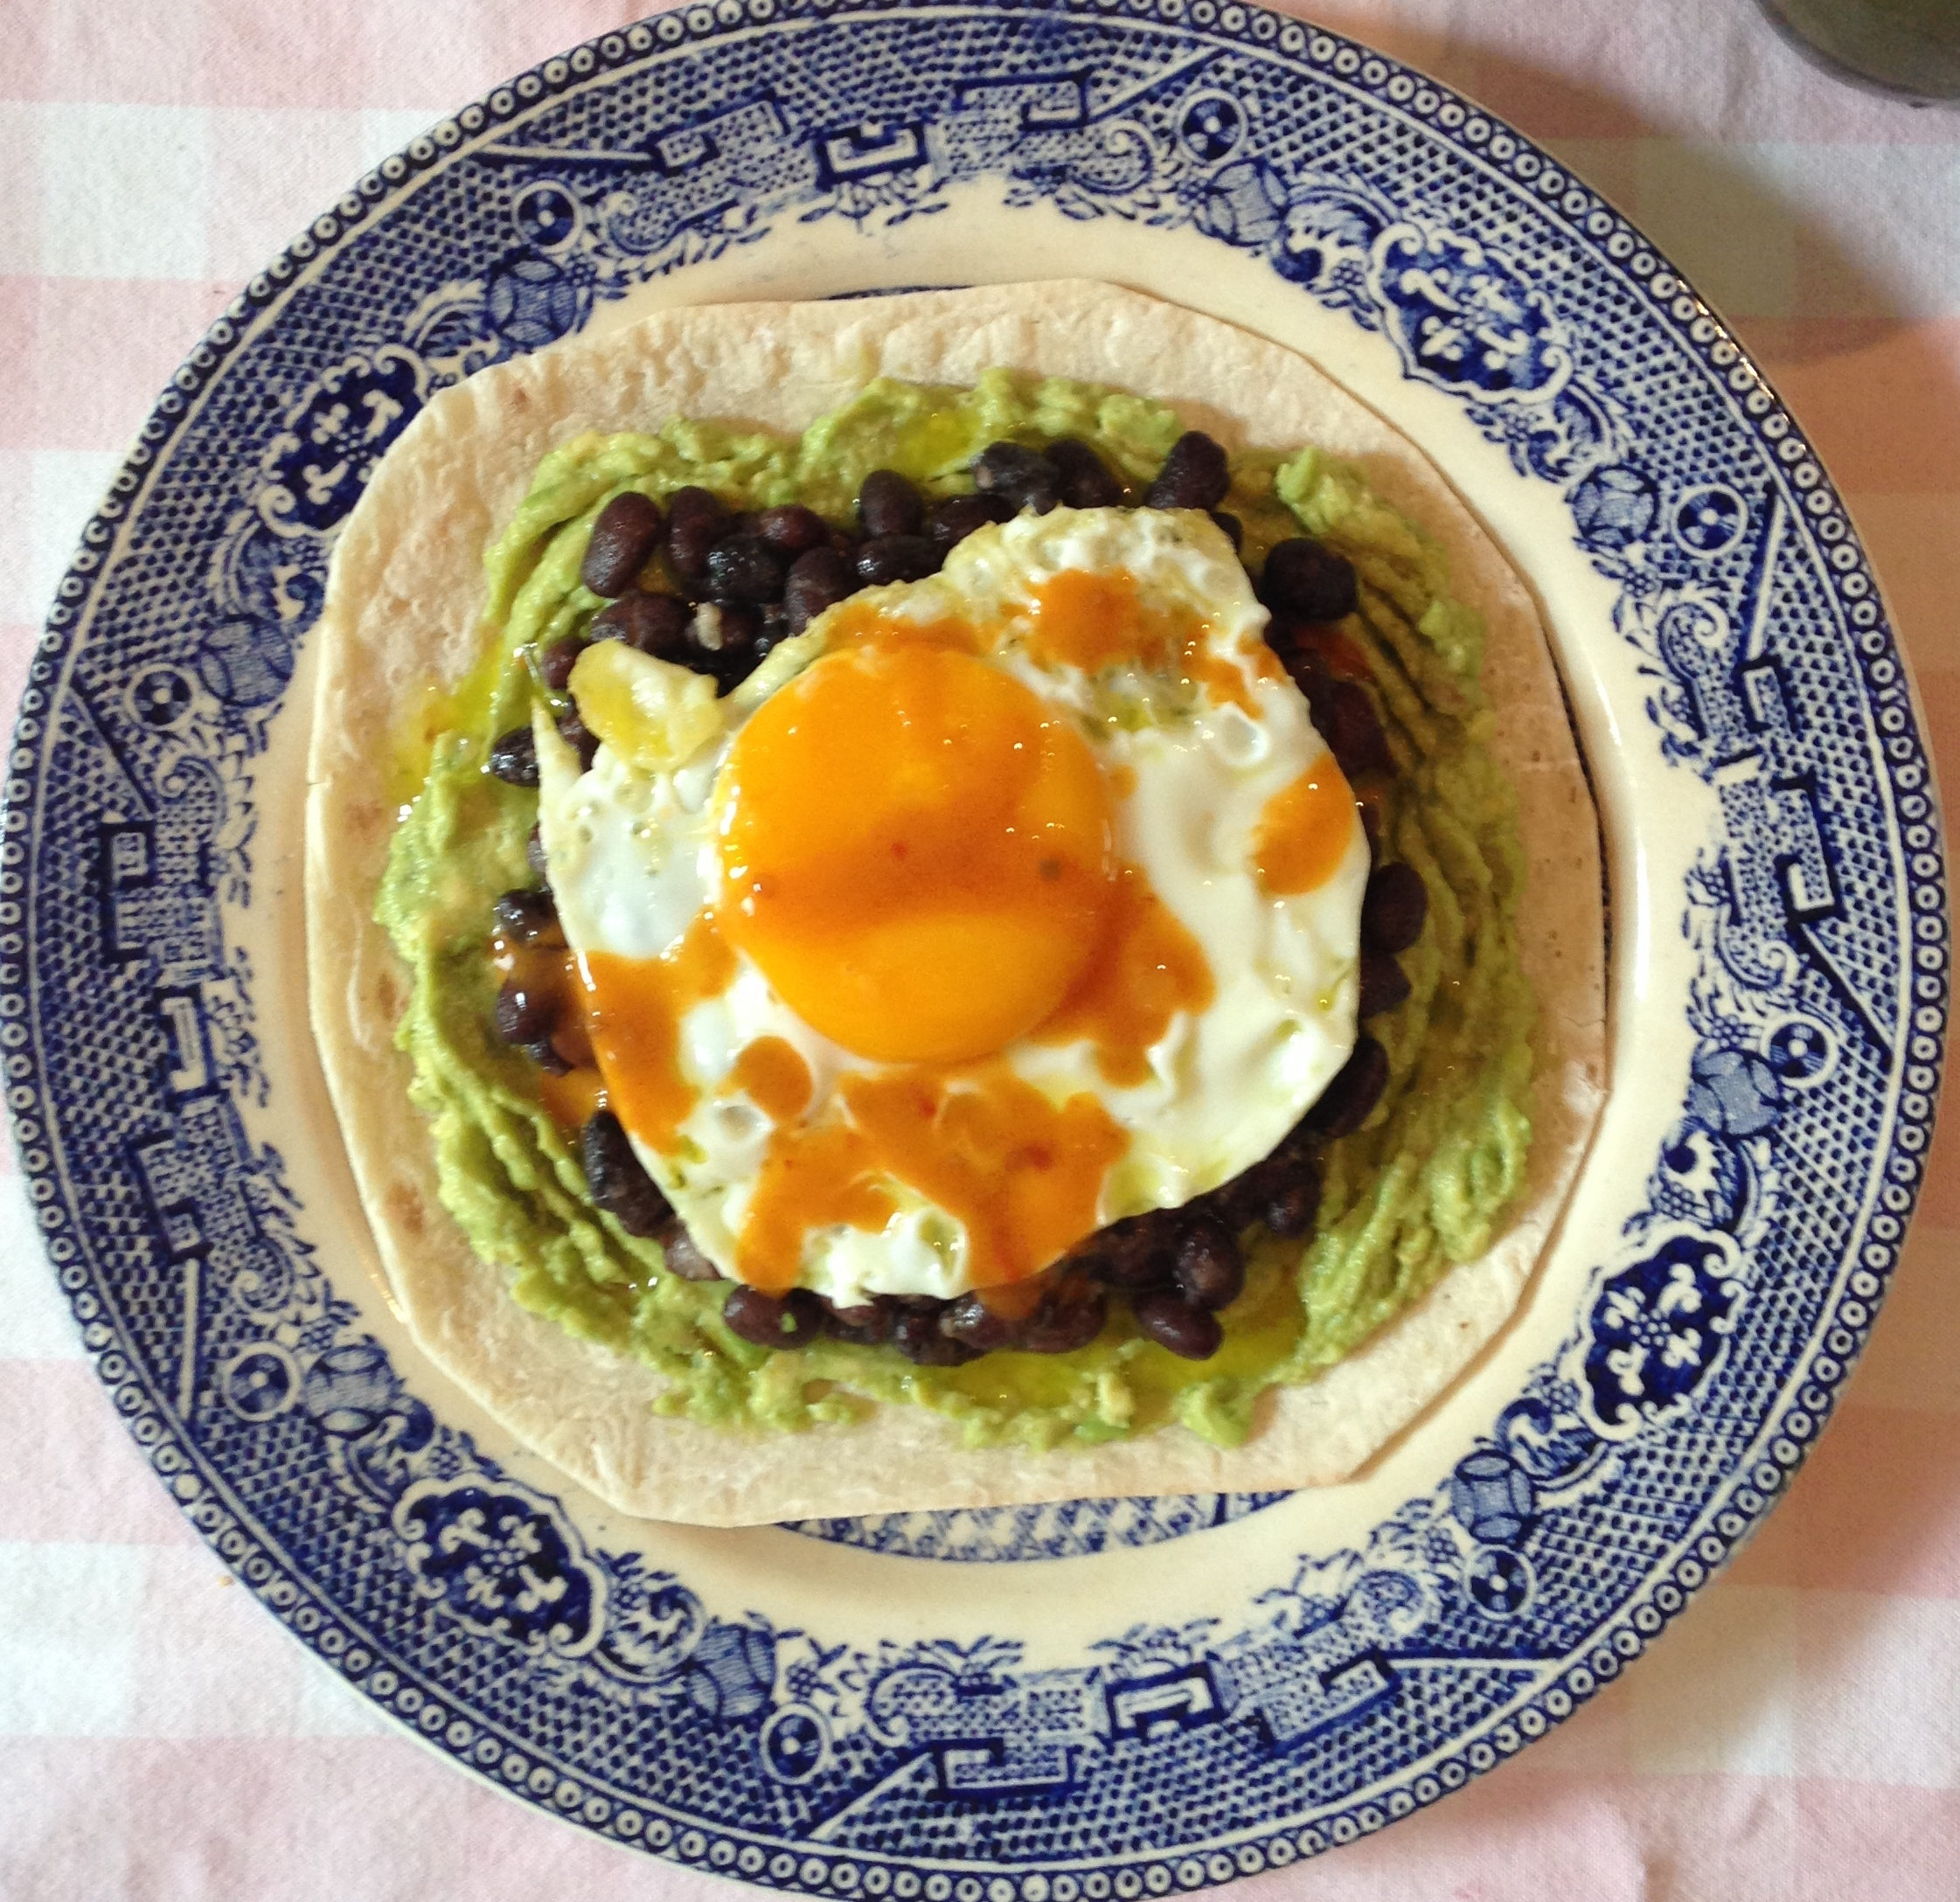 Amazing Breakfast Tortilla with crushed avocado, black beans and coconut oil fried egg (GF)